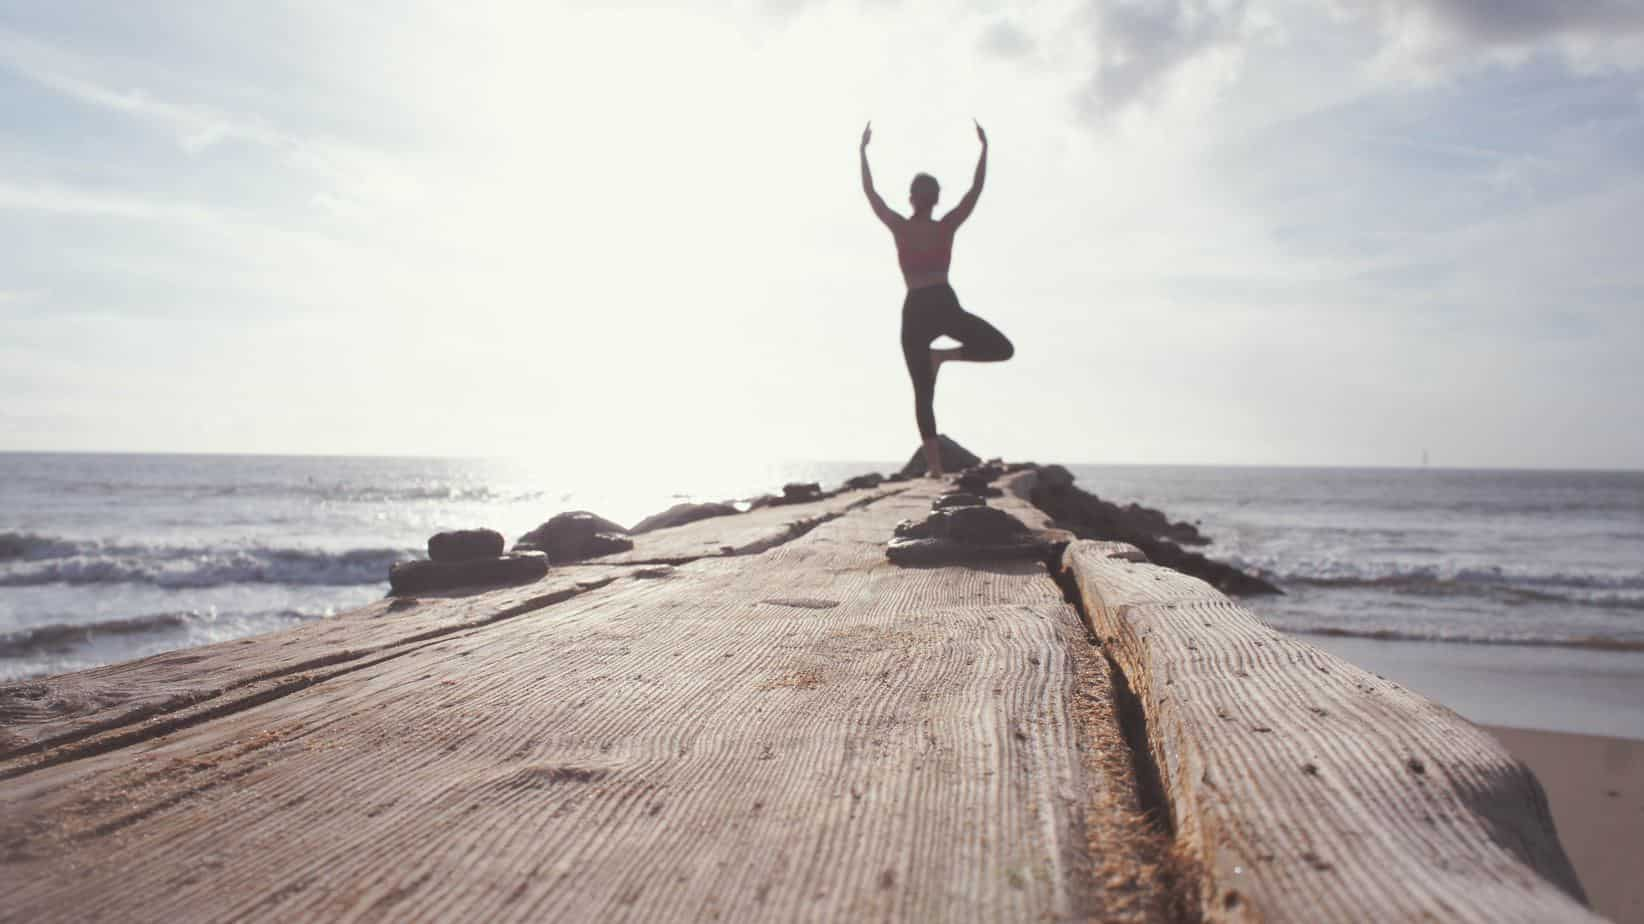 Yoga, mindfulness and meditation are all great ways to promote calm and relaxation